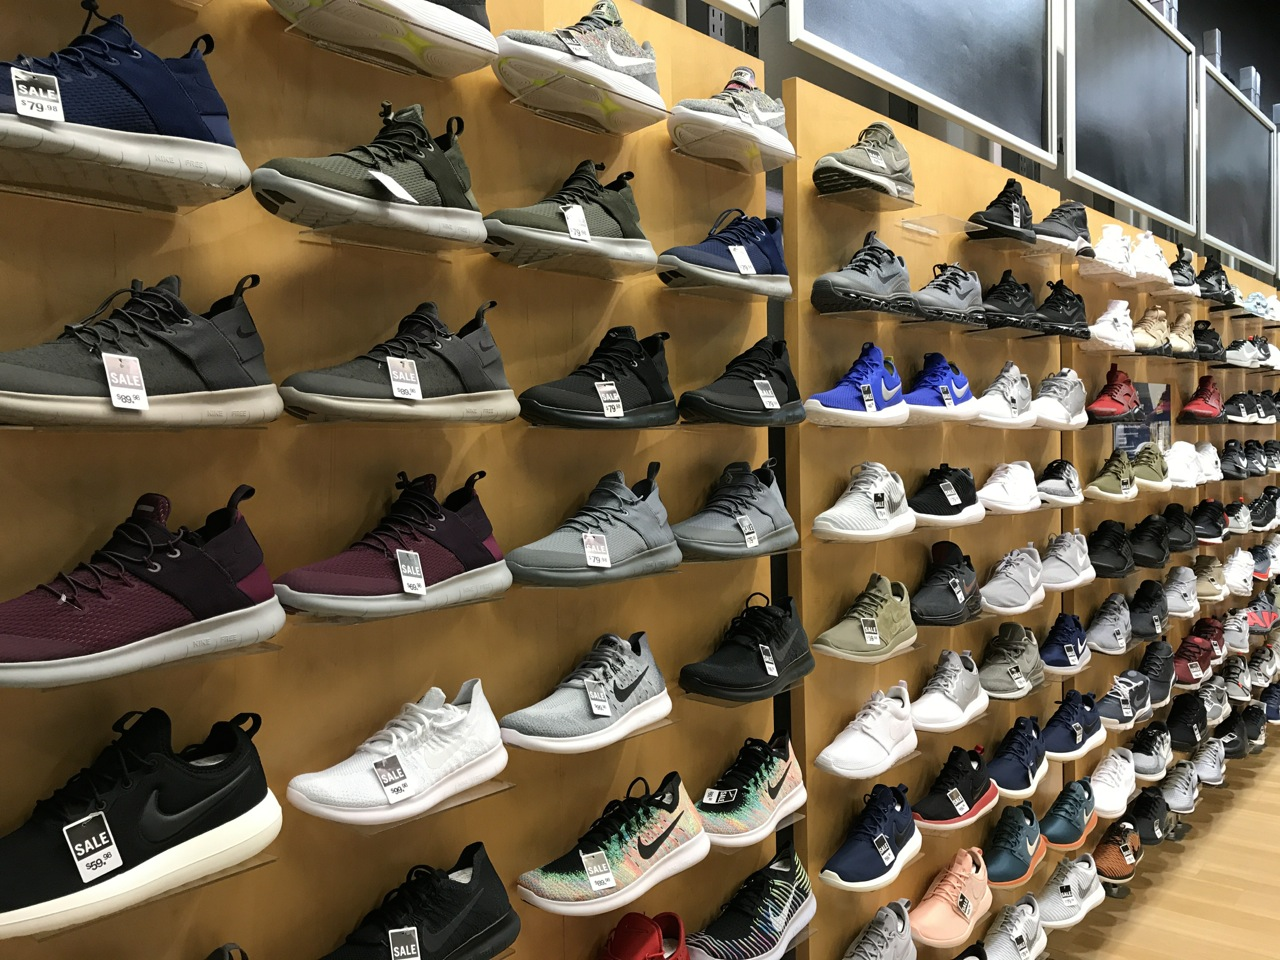 A wall of Nike shoes on sale at Finish Line